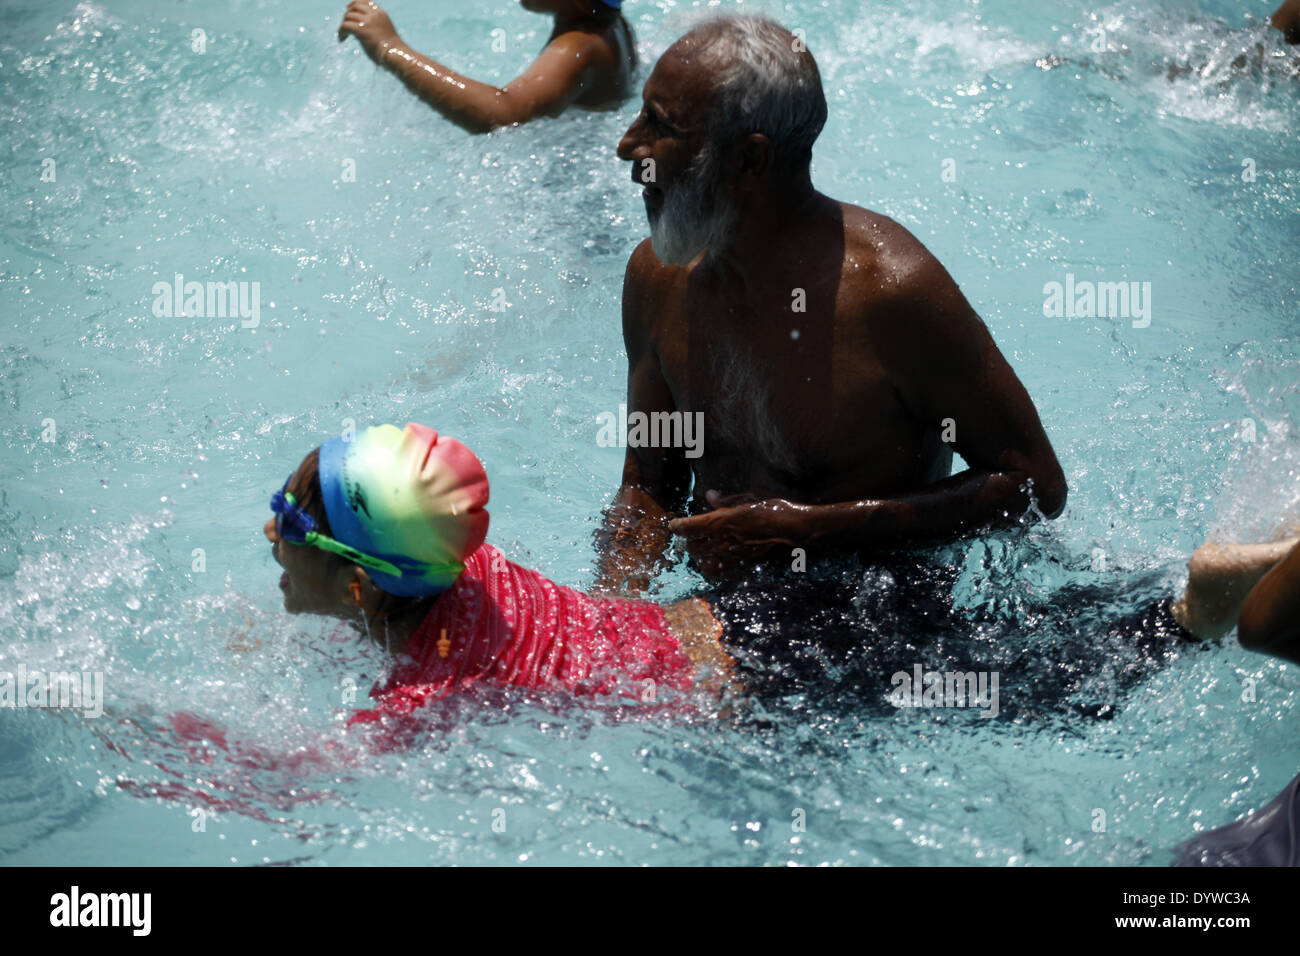 Dhaka Bangladesh 25th Apr 2014 Children Are Learing Swimming In A Stock Photo Royalty Free